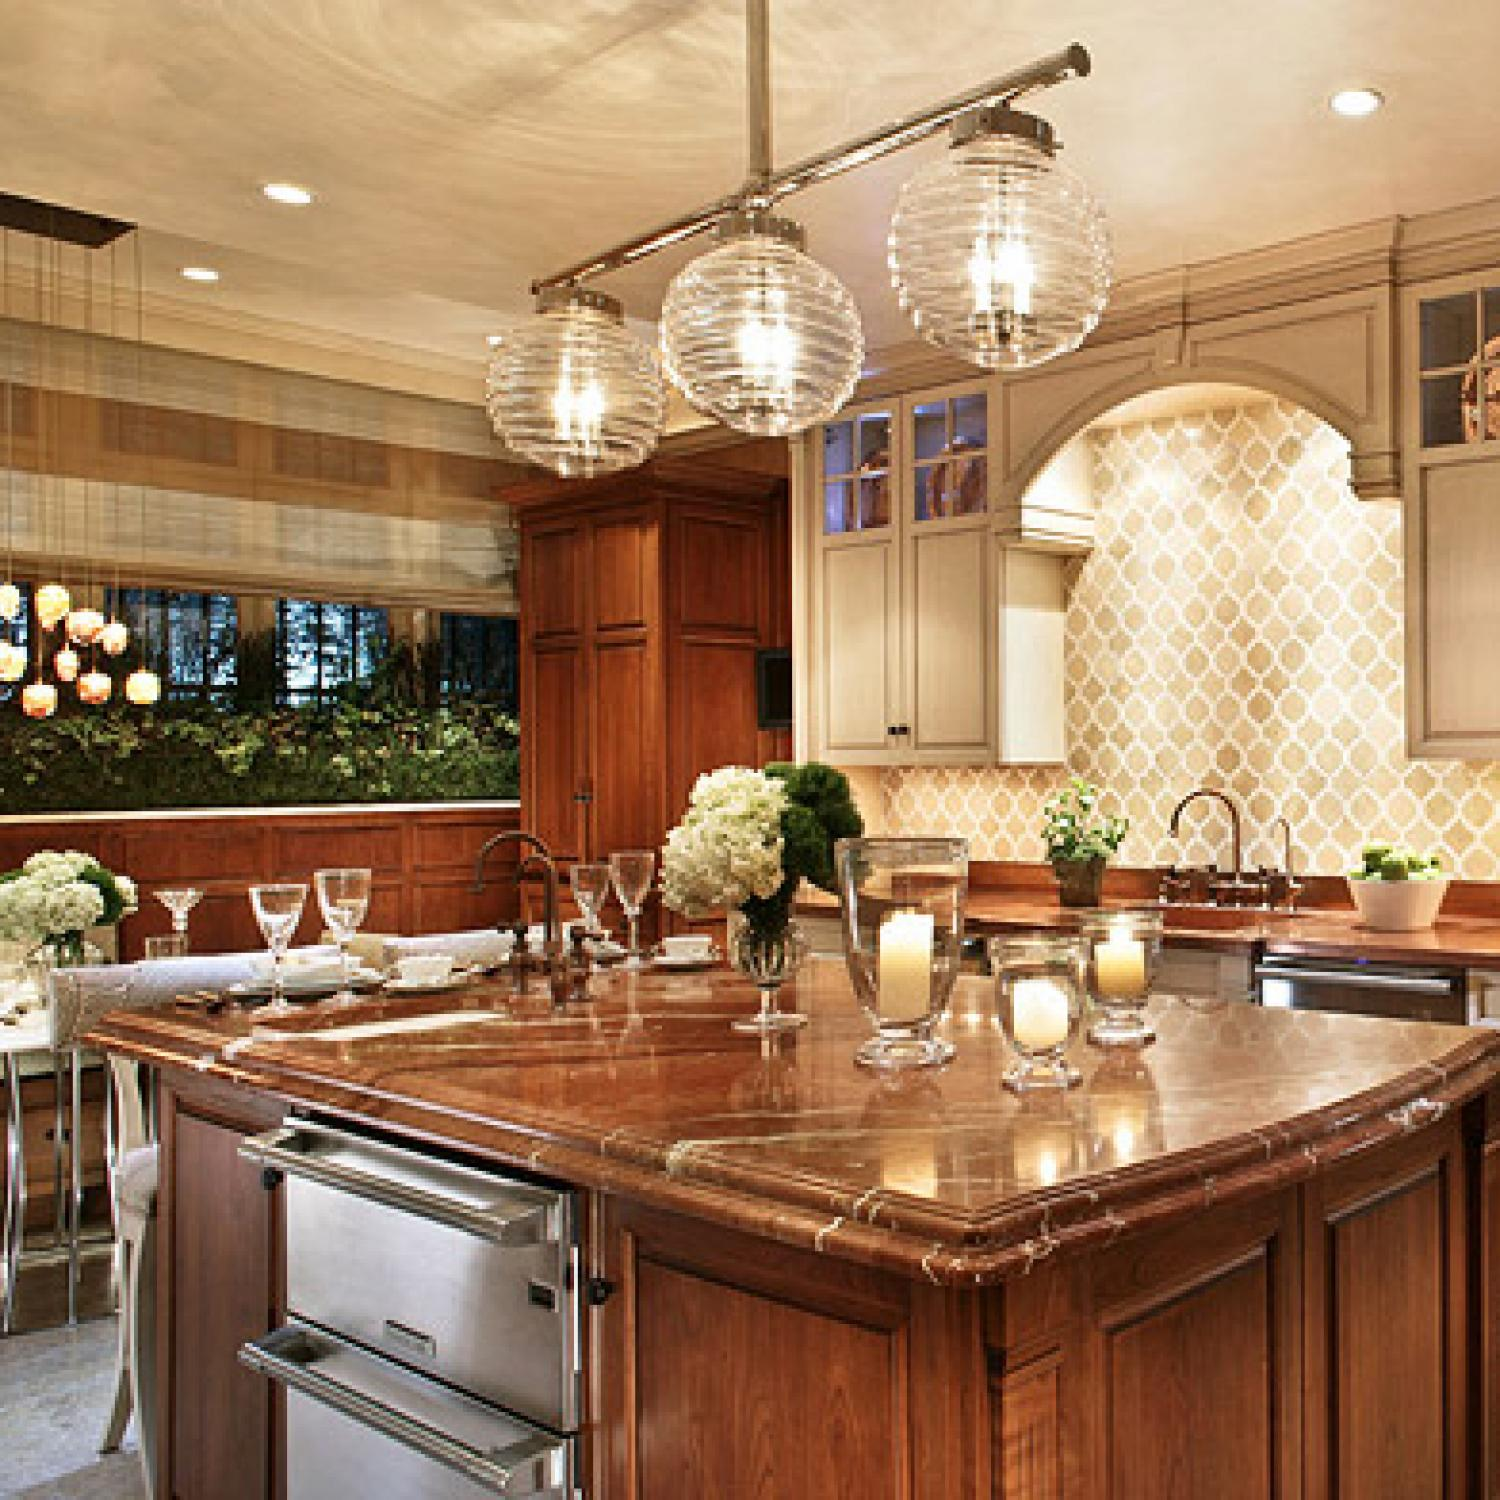 Different Kitchen Islands Stylish Islands For Traditional Kitchens | Traditional Home